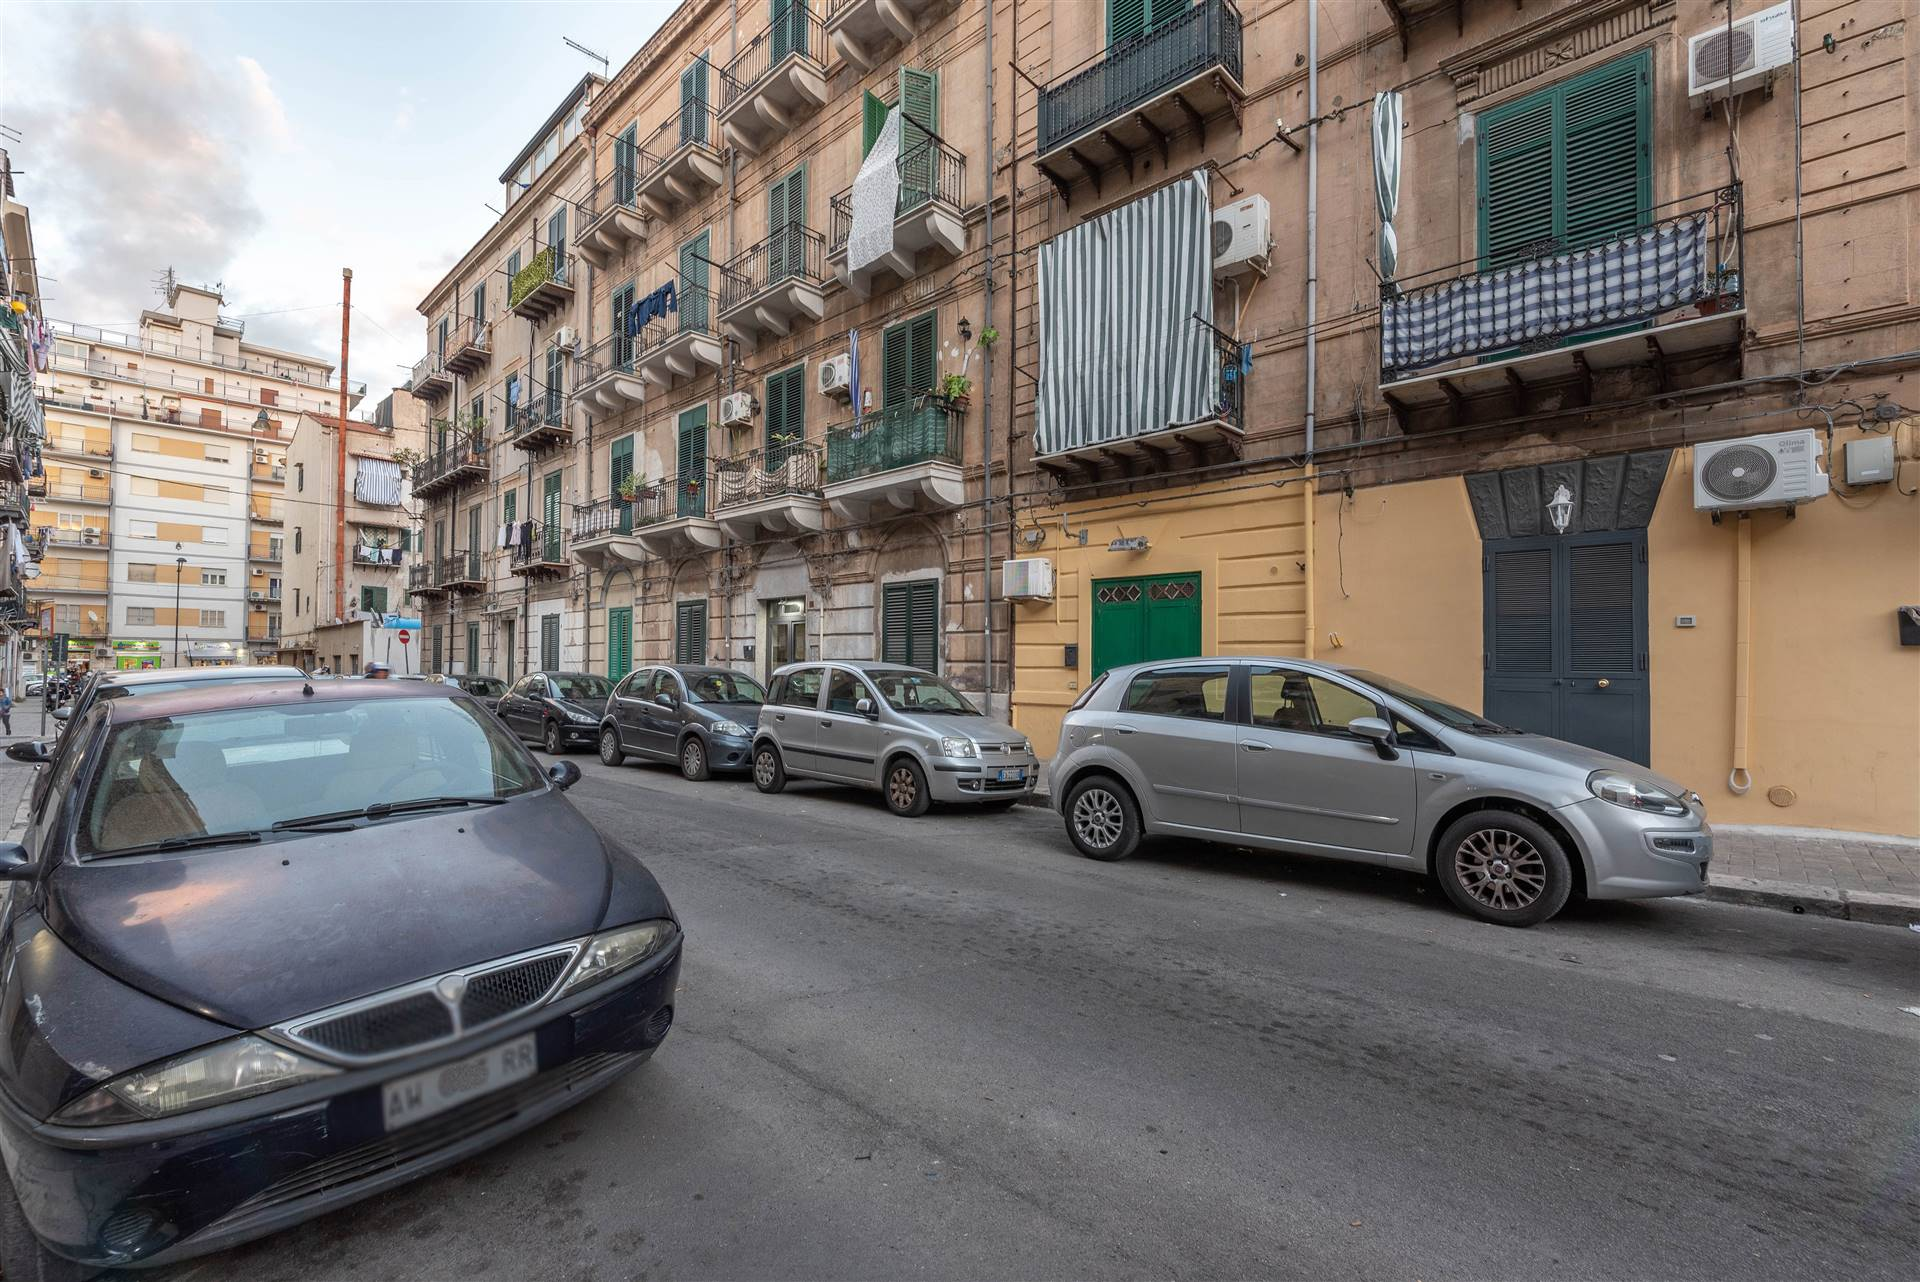 POLICLINICO, PALERMO, Apartment for sale of 26 Sq. mt., Be restored, Heating Non-existent, Energetic class: G, Epi: 175 kwh/m2 year, placed at Ground